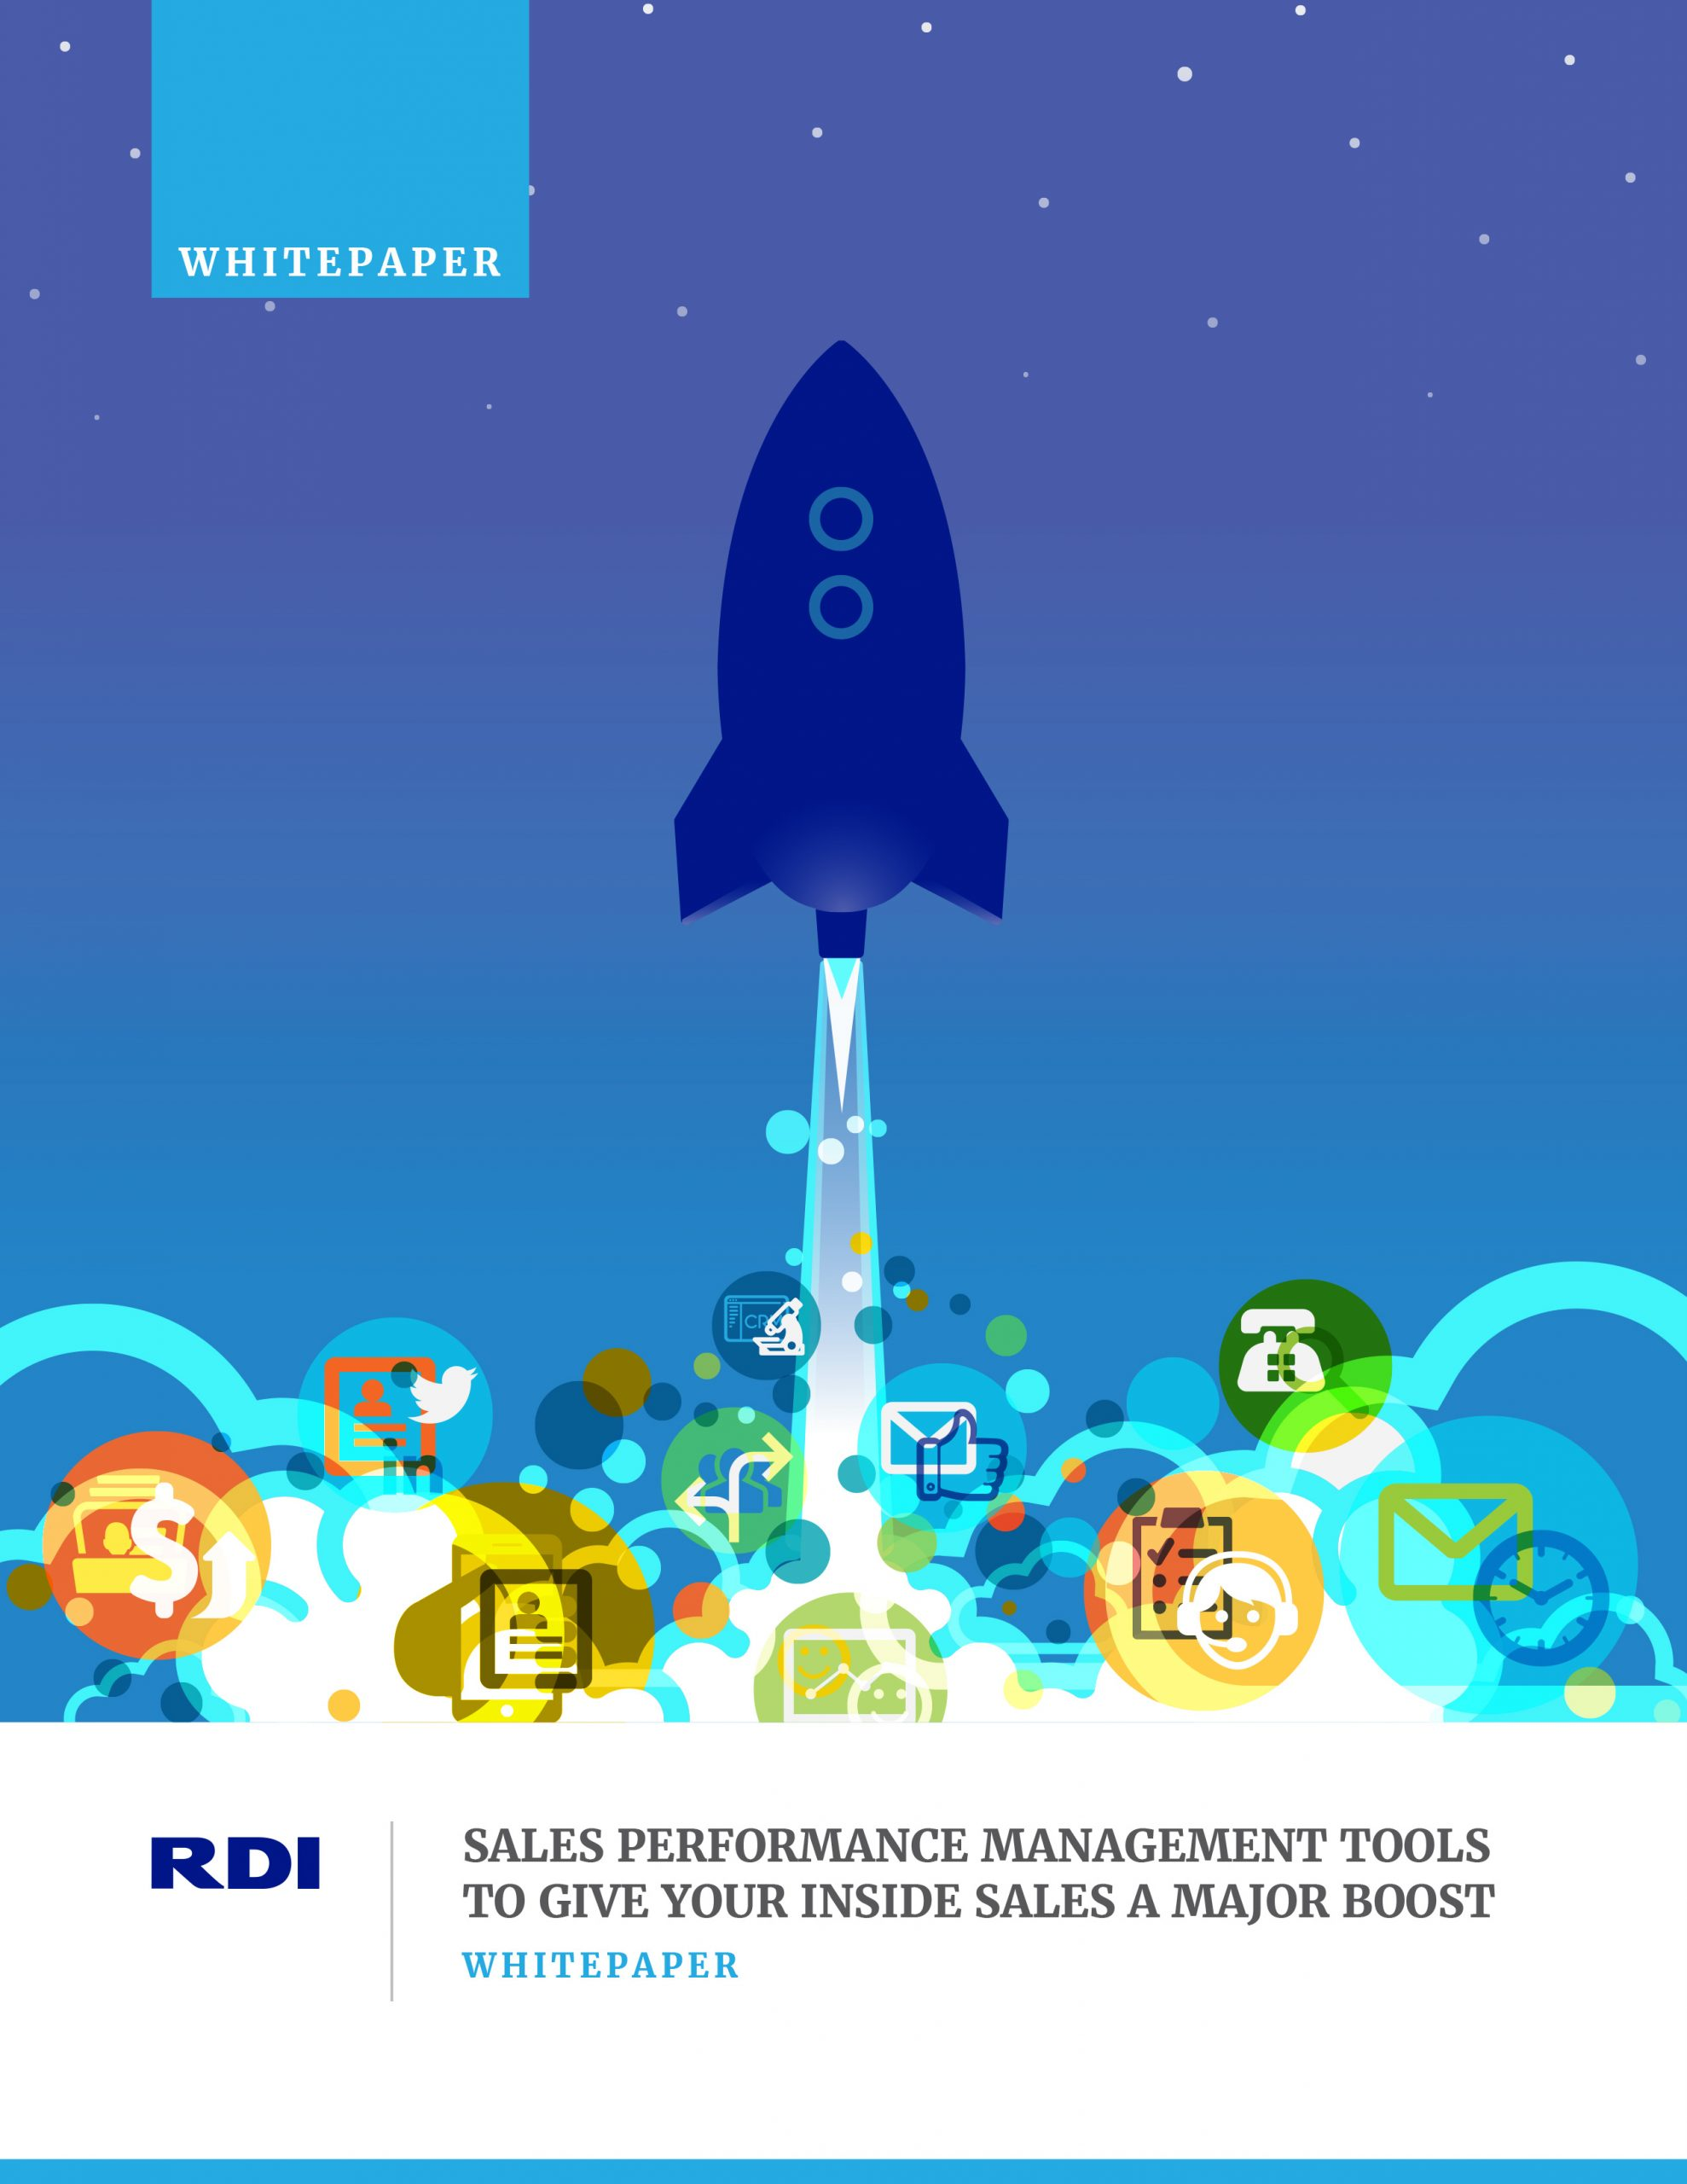 Sales Performance Management Tools to Give Your Inside Sales a Major Boost